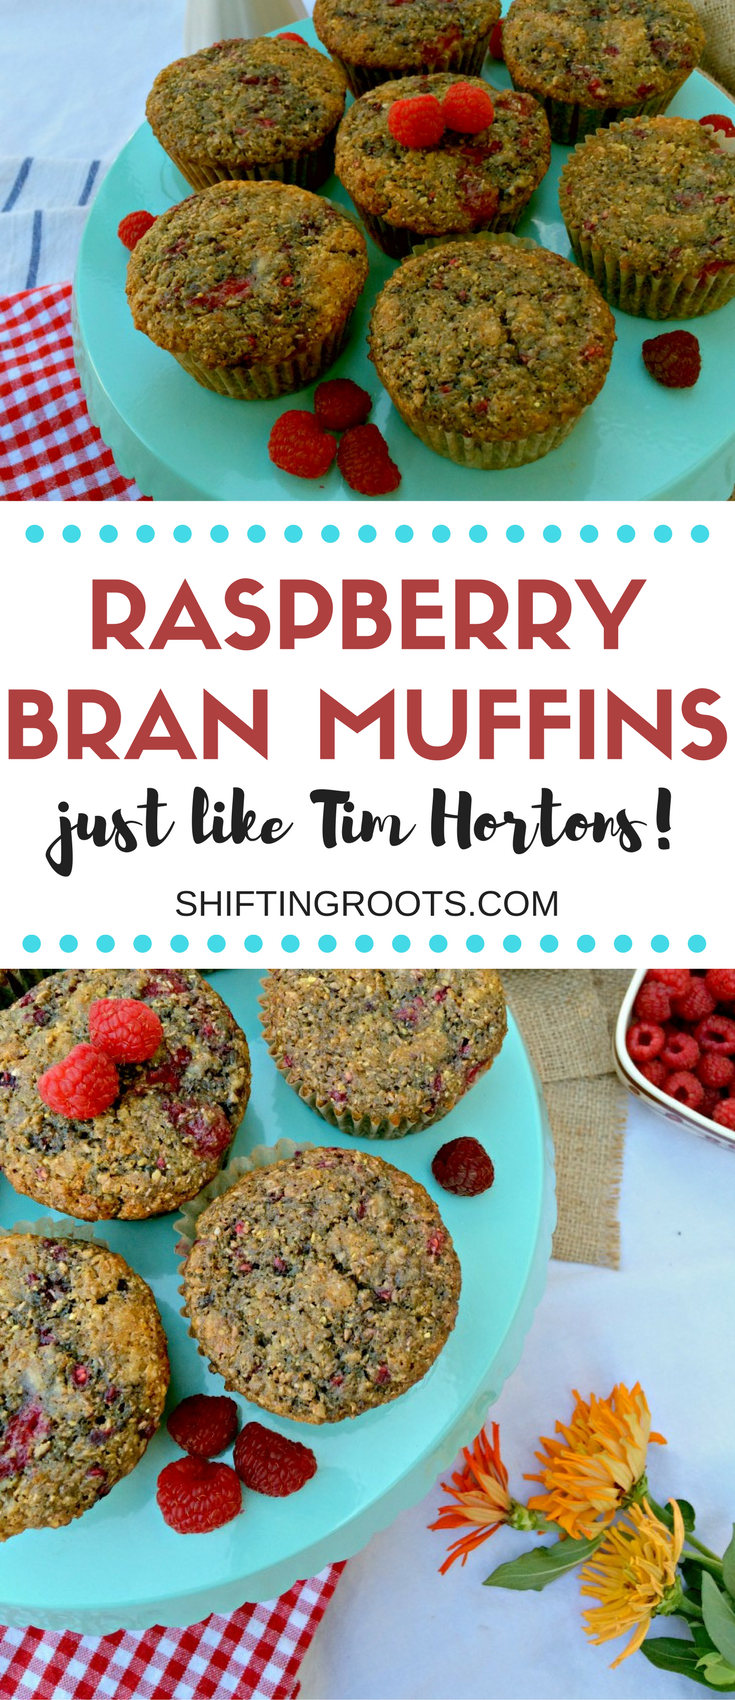 Every year I can't wait until Tim Hortons serves Raspberry Bran Muffins. They're my favourite! I developed this easy copycat recipe to fill the craving. Healthy, delicious, and perfect for snacks and back to school lunches.